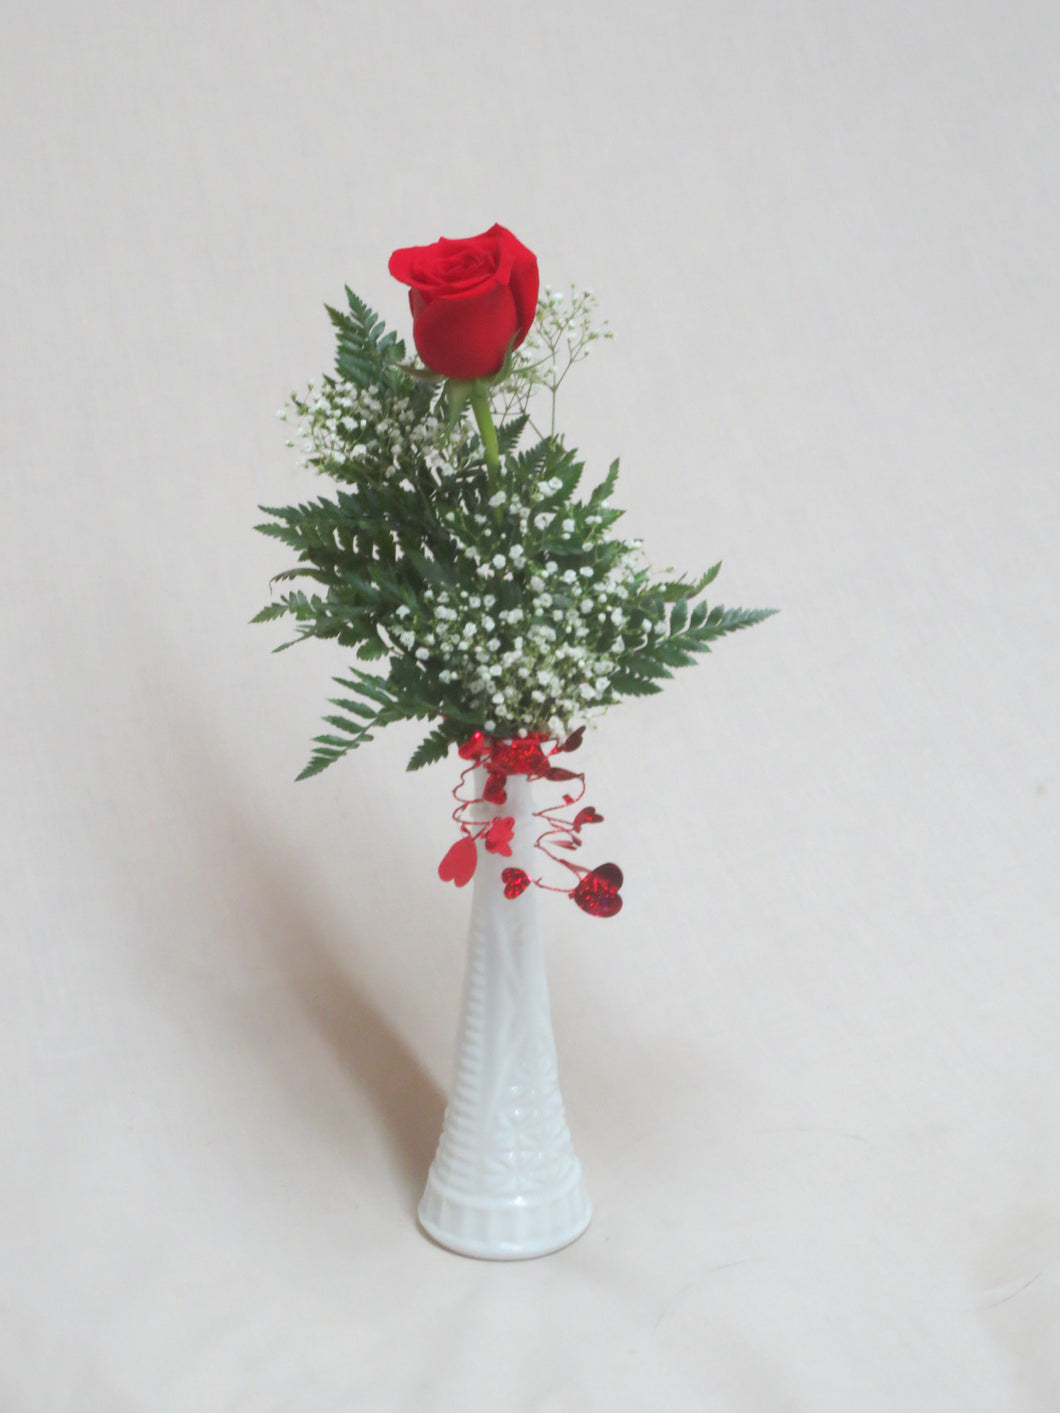 EA 1215 Lovely fresh rose in a vase with greens and dainty filler